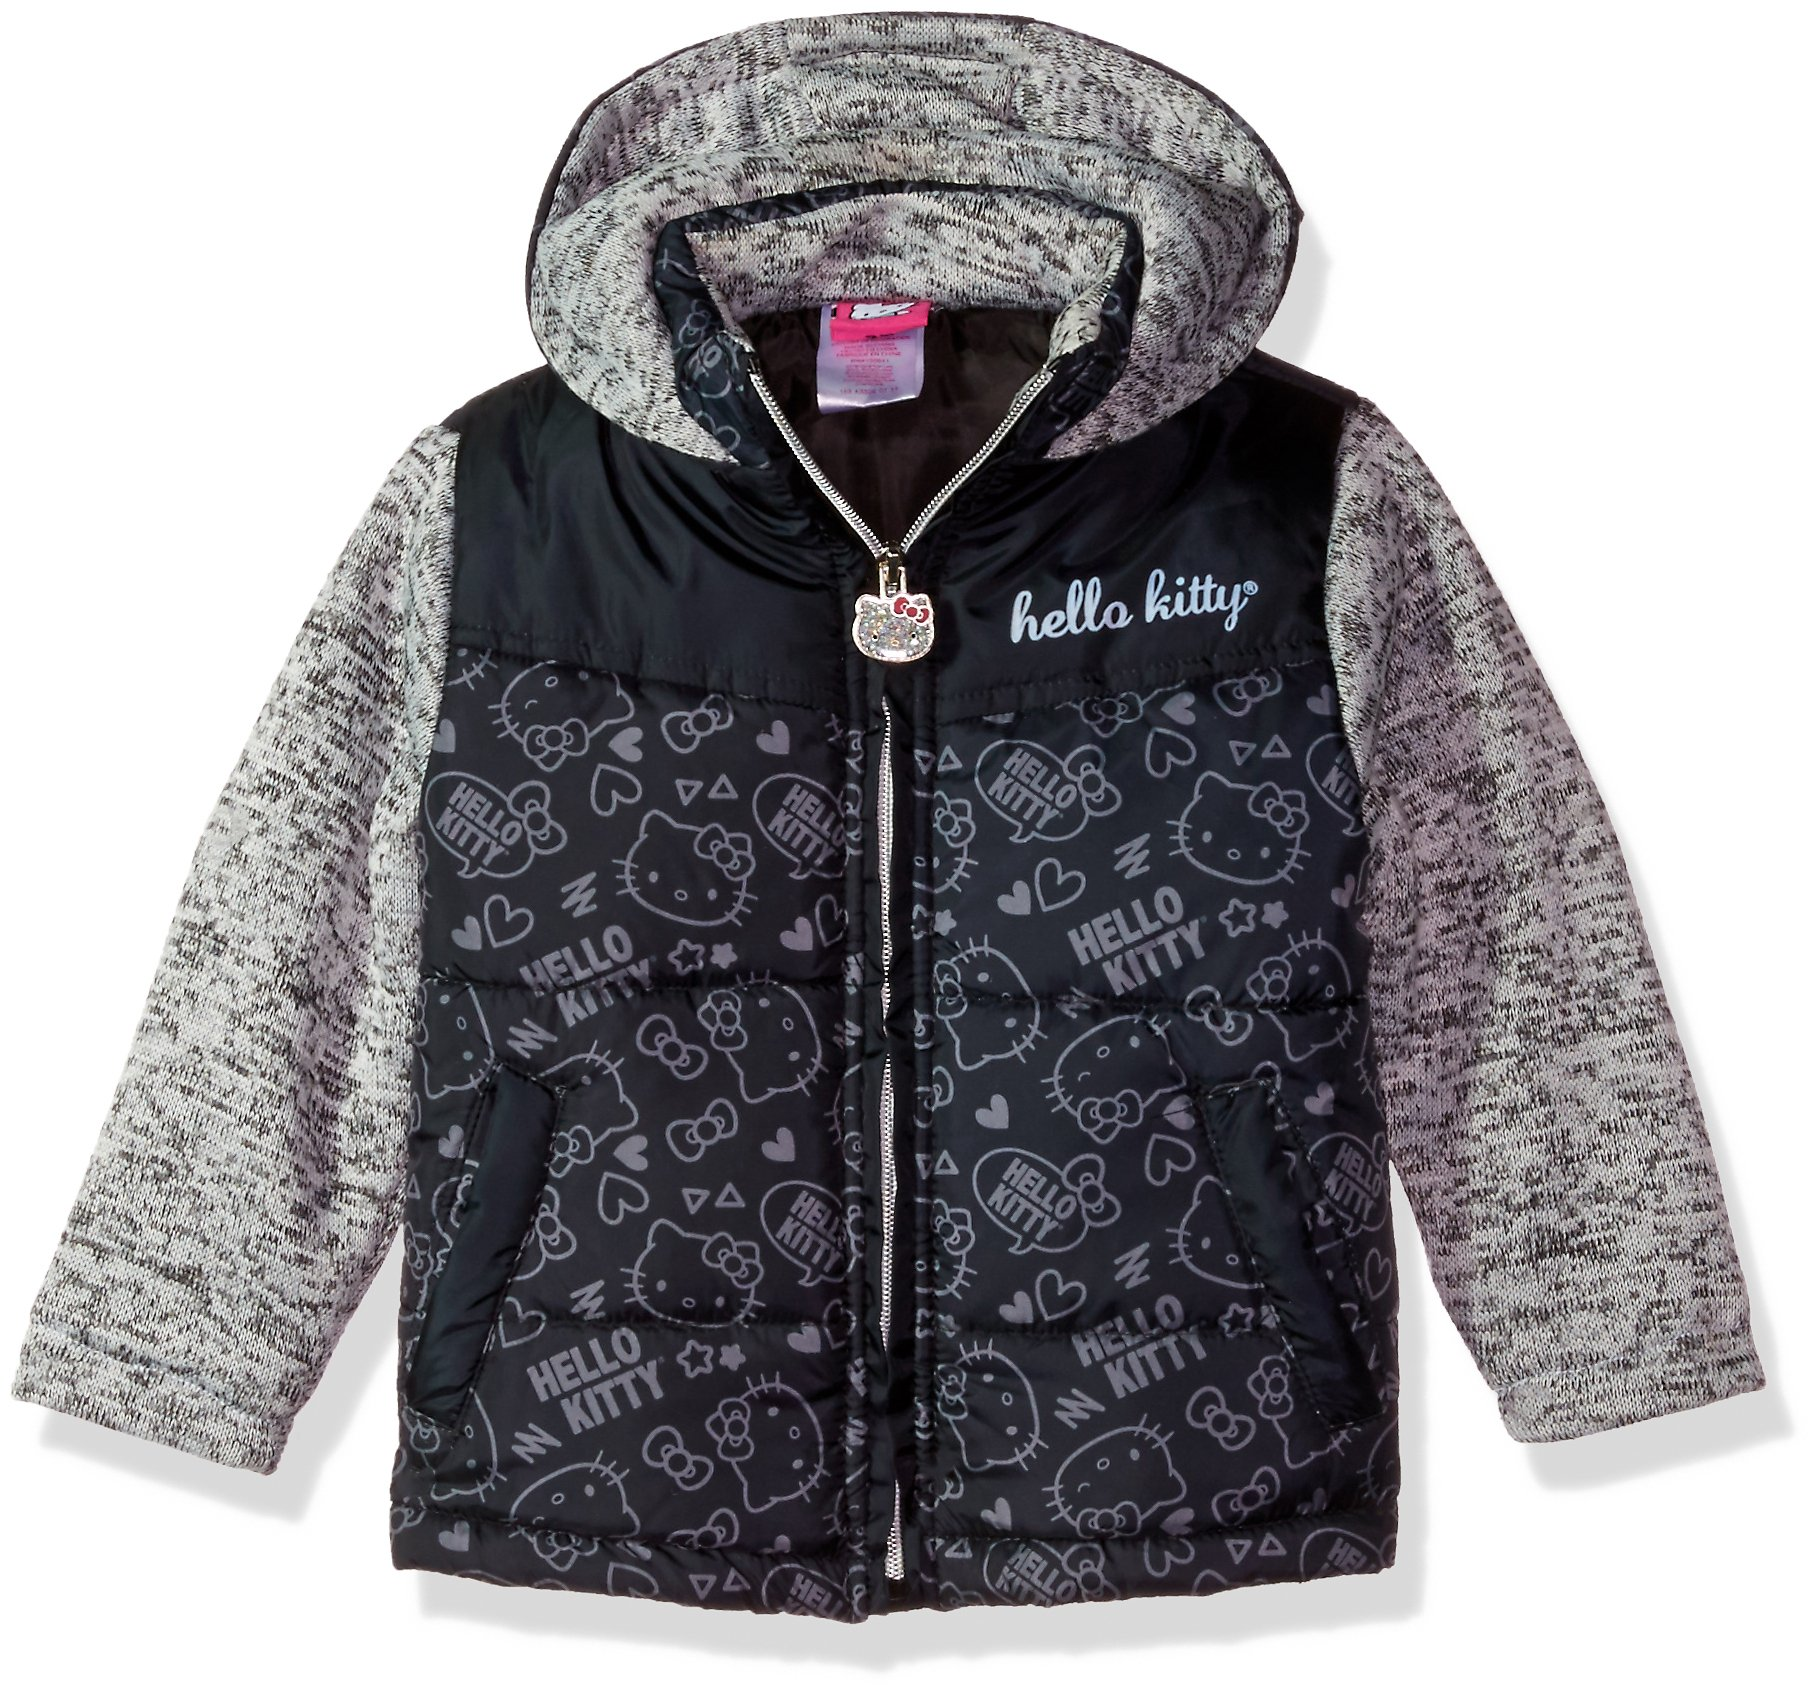 Hello Kitty Little Girls' Printed Puffer Jacket with Sweater Sleeves, Black, 5